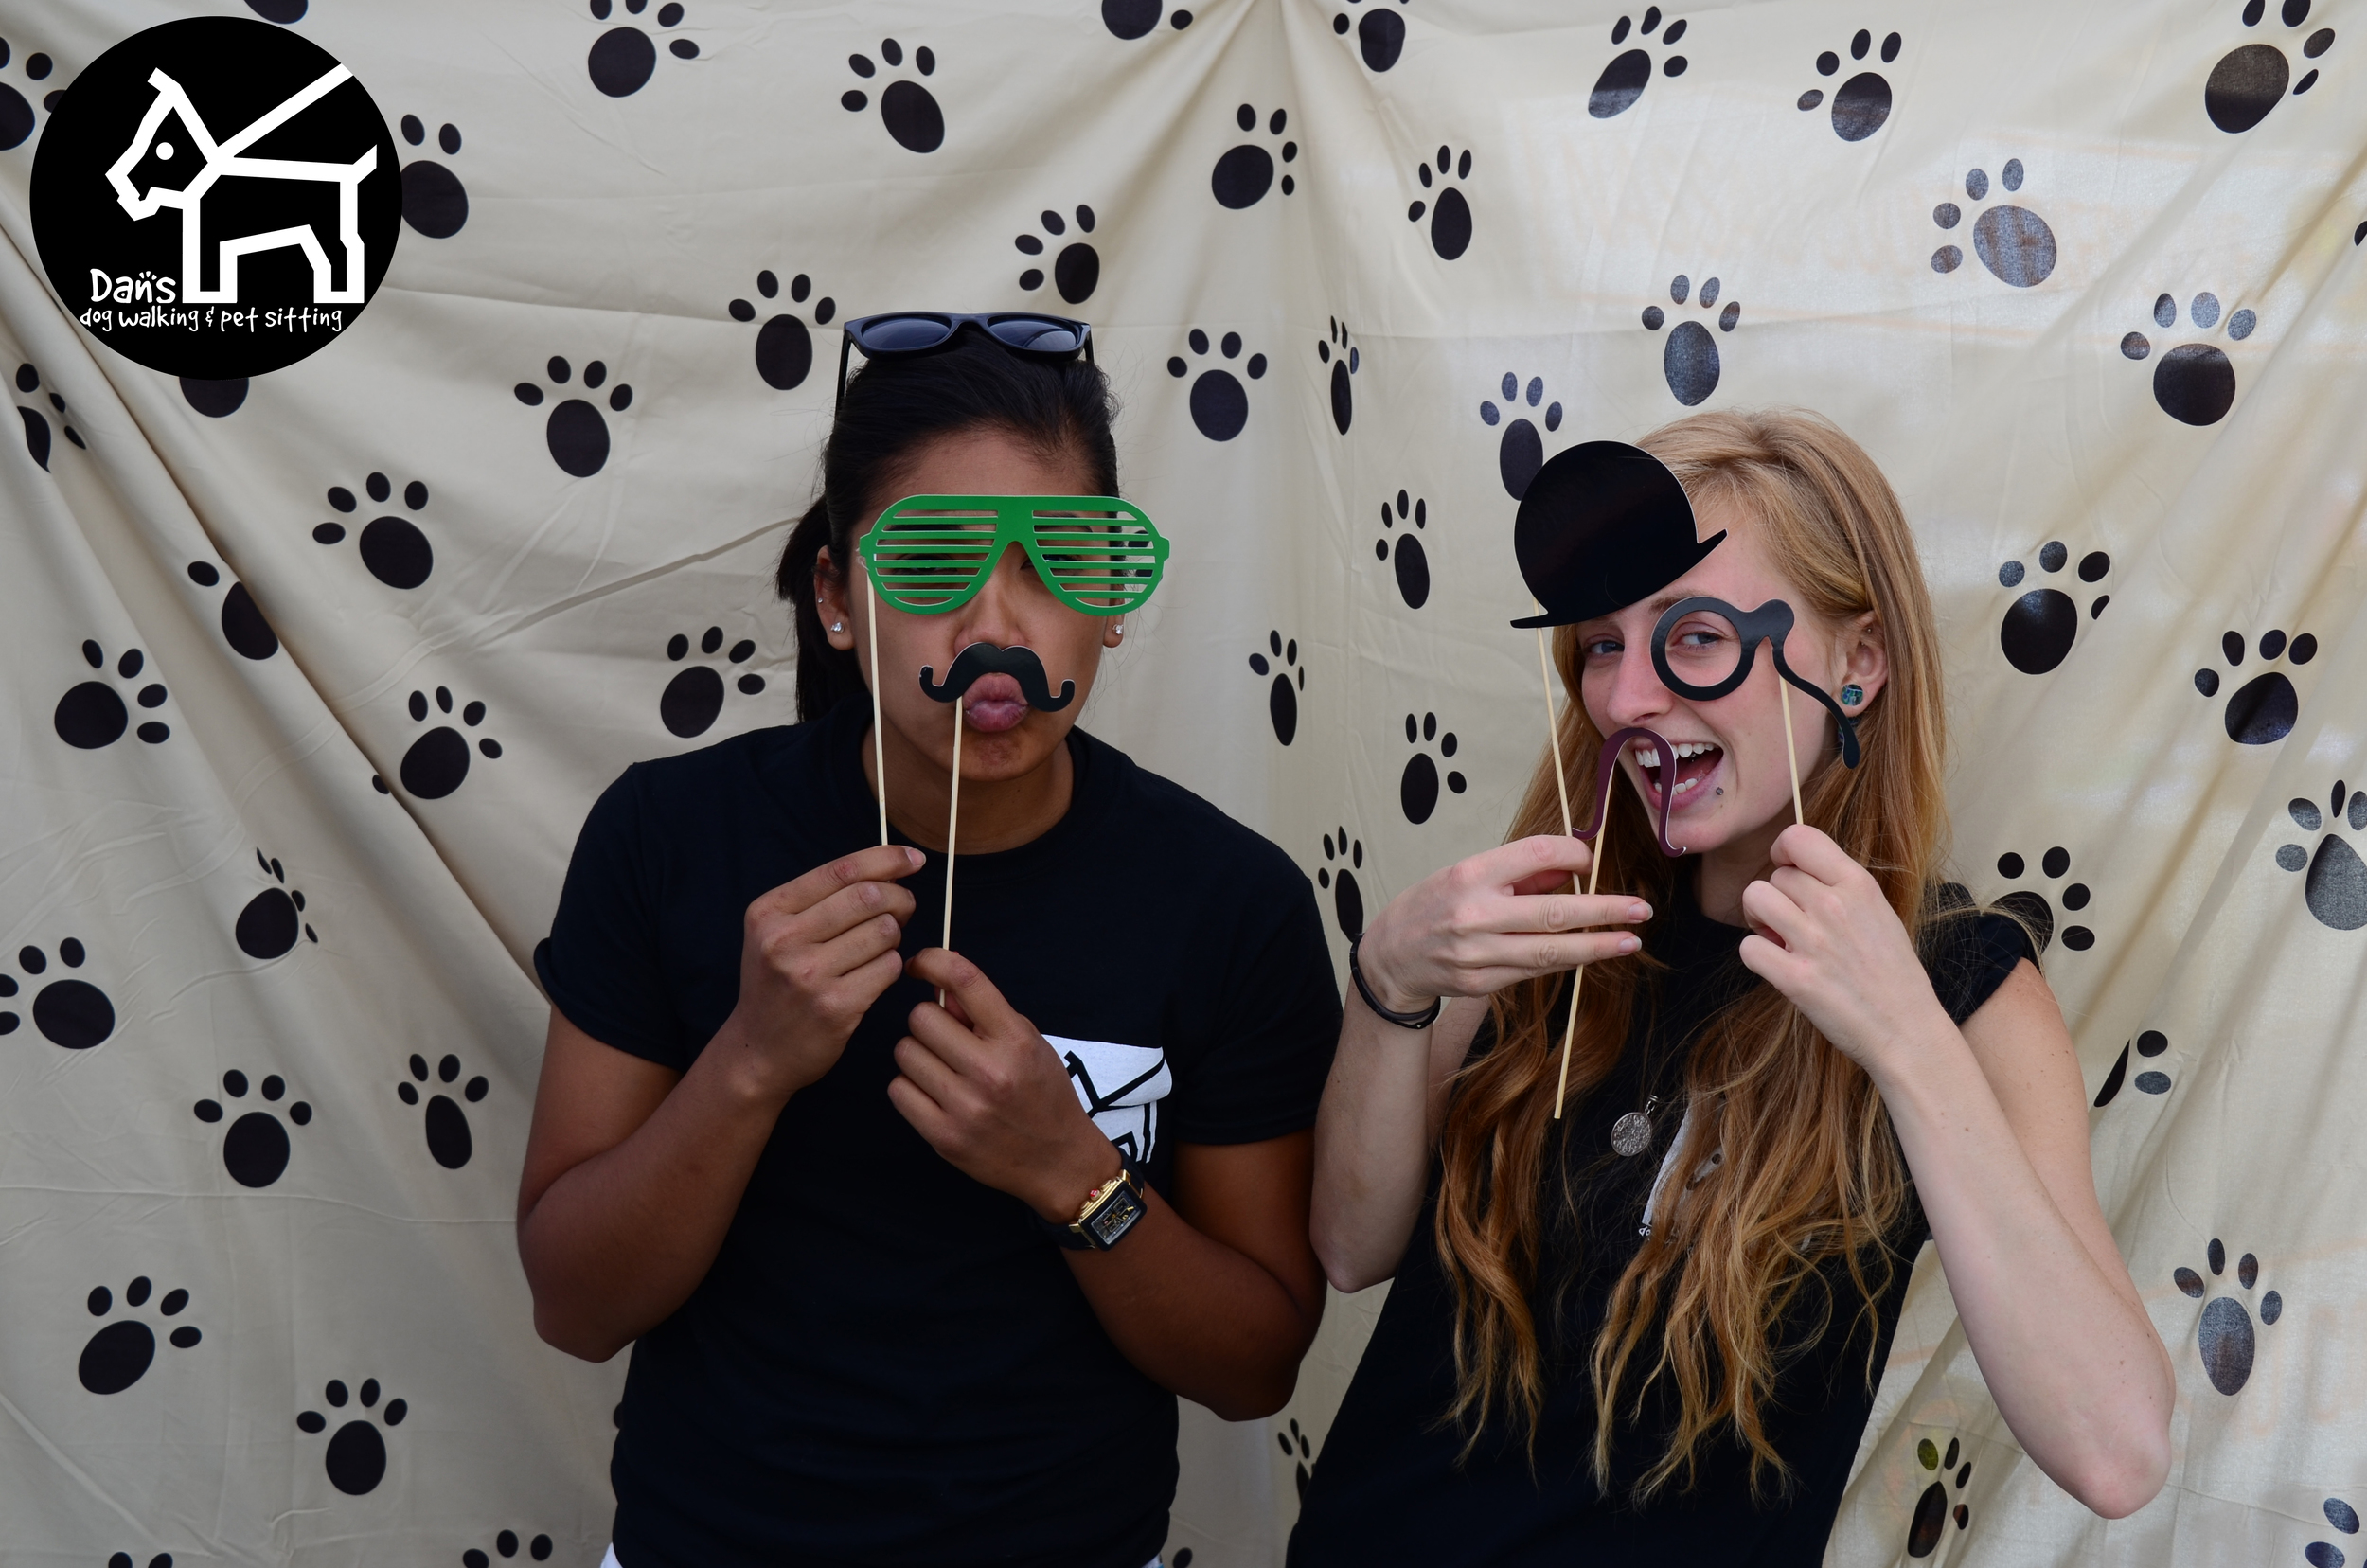 Lara and Ali at the Dan's Dog Walking and Pet Sitting Photobooth.jpg